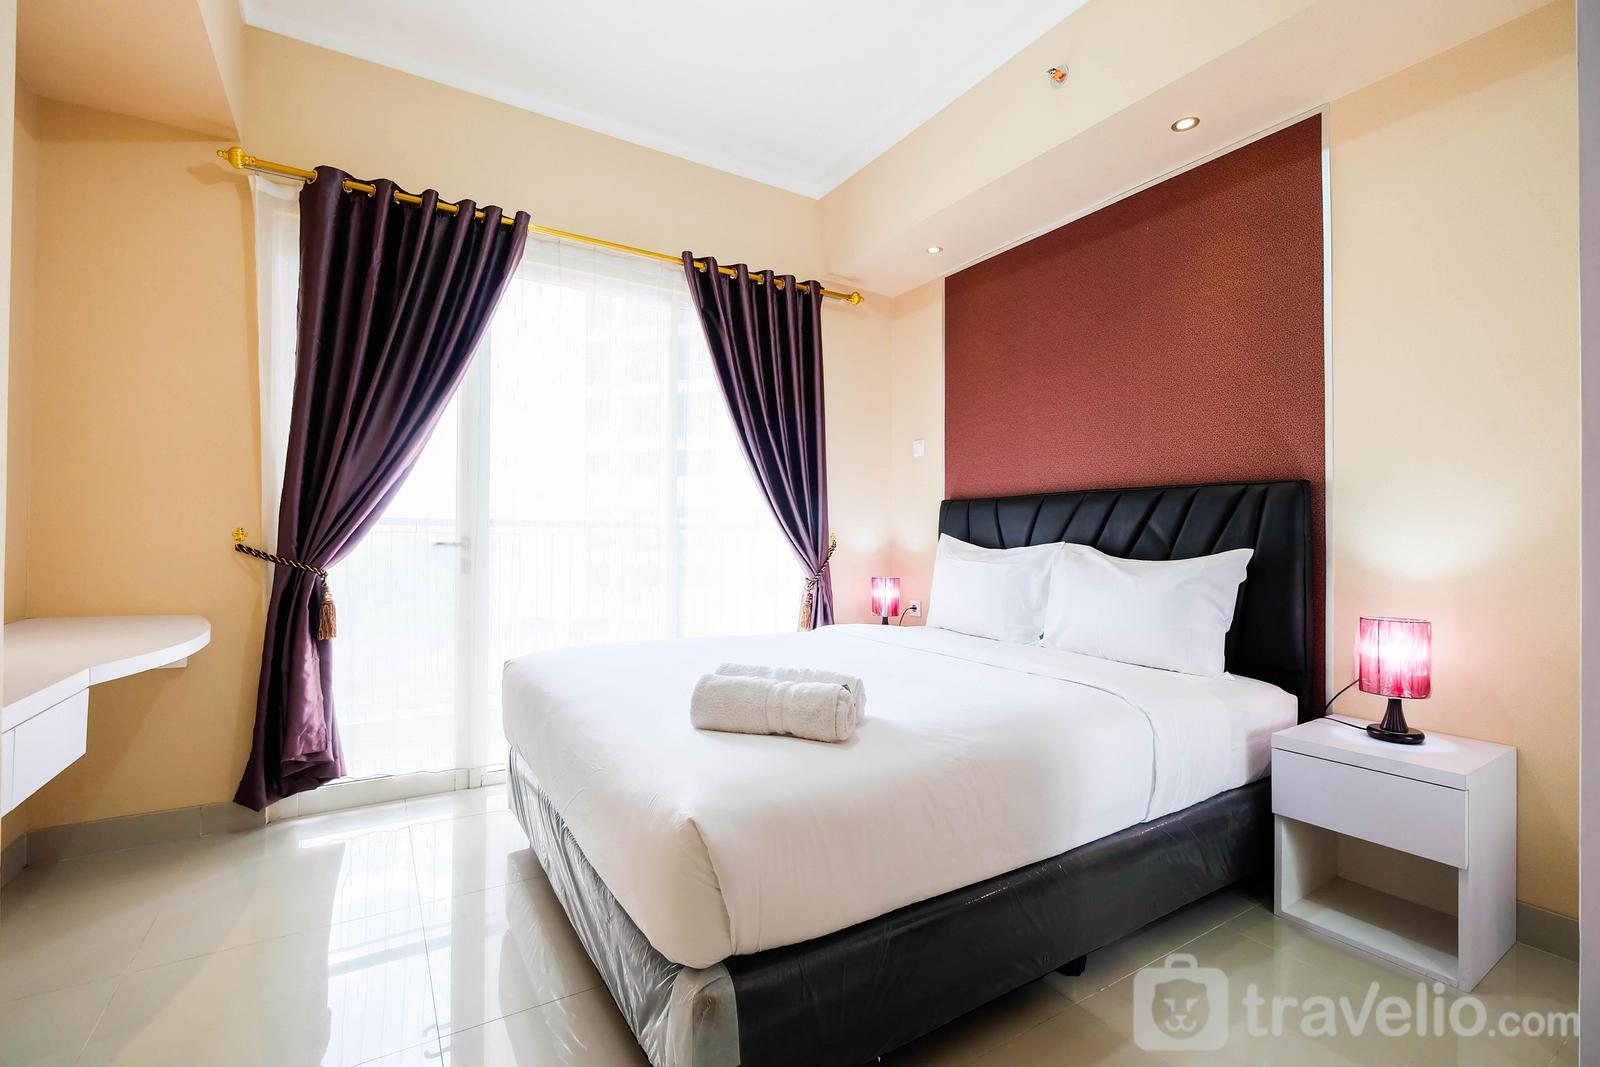 The Oasis Cikarang - Bright and Stylish 1BR The Oasis Apartment Cikarang By Travelio